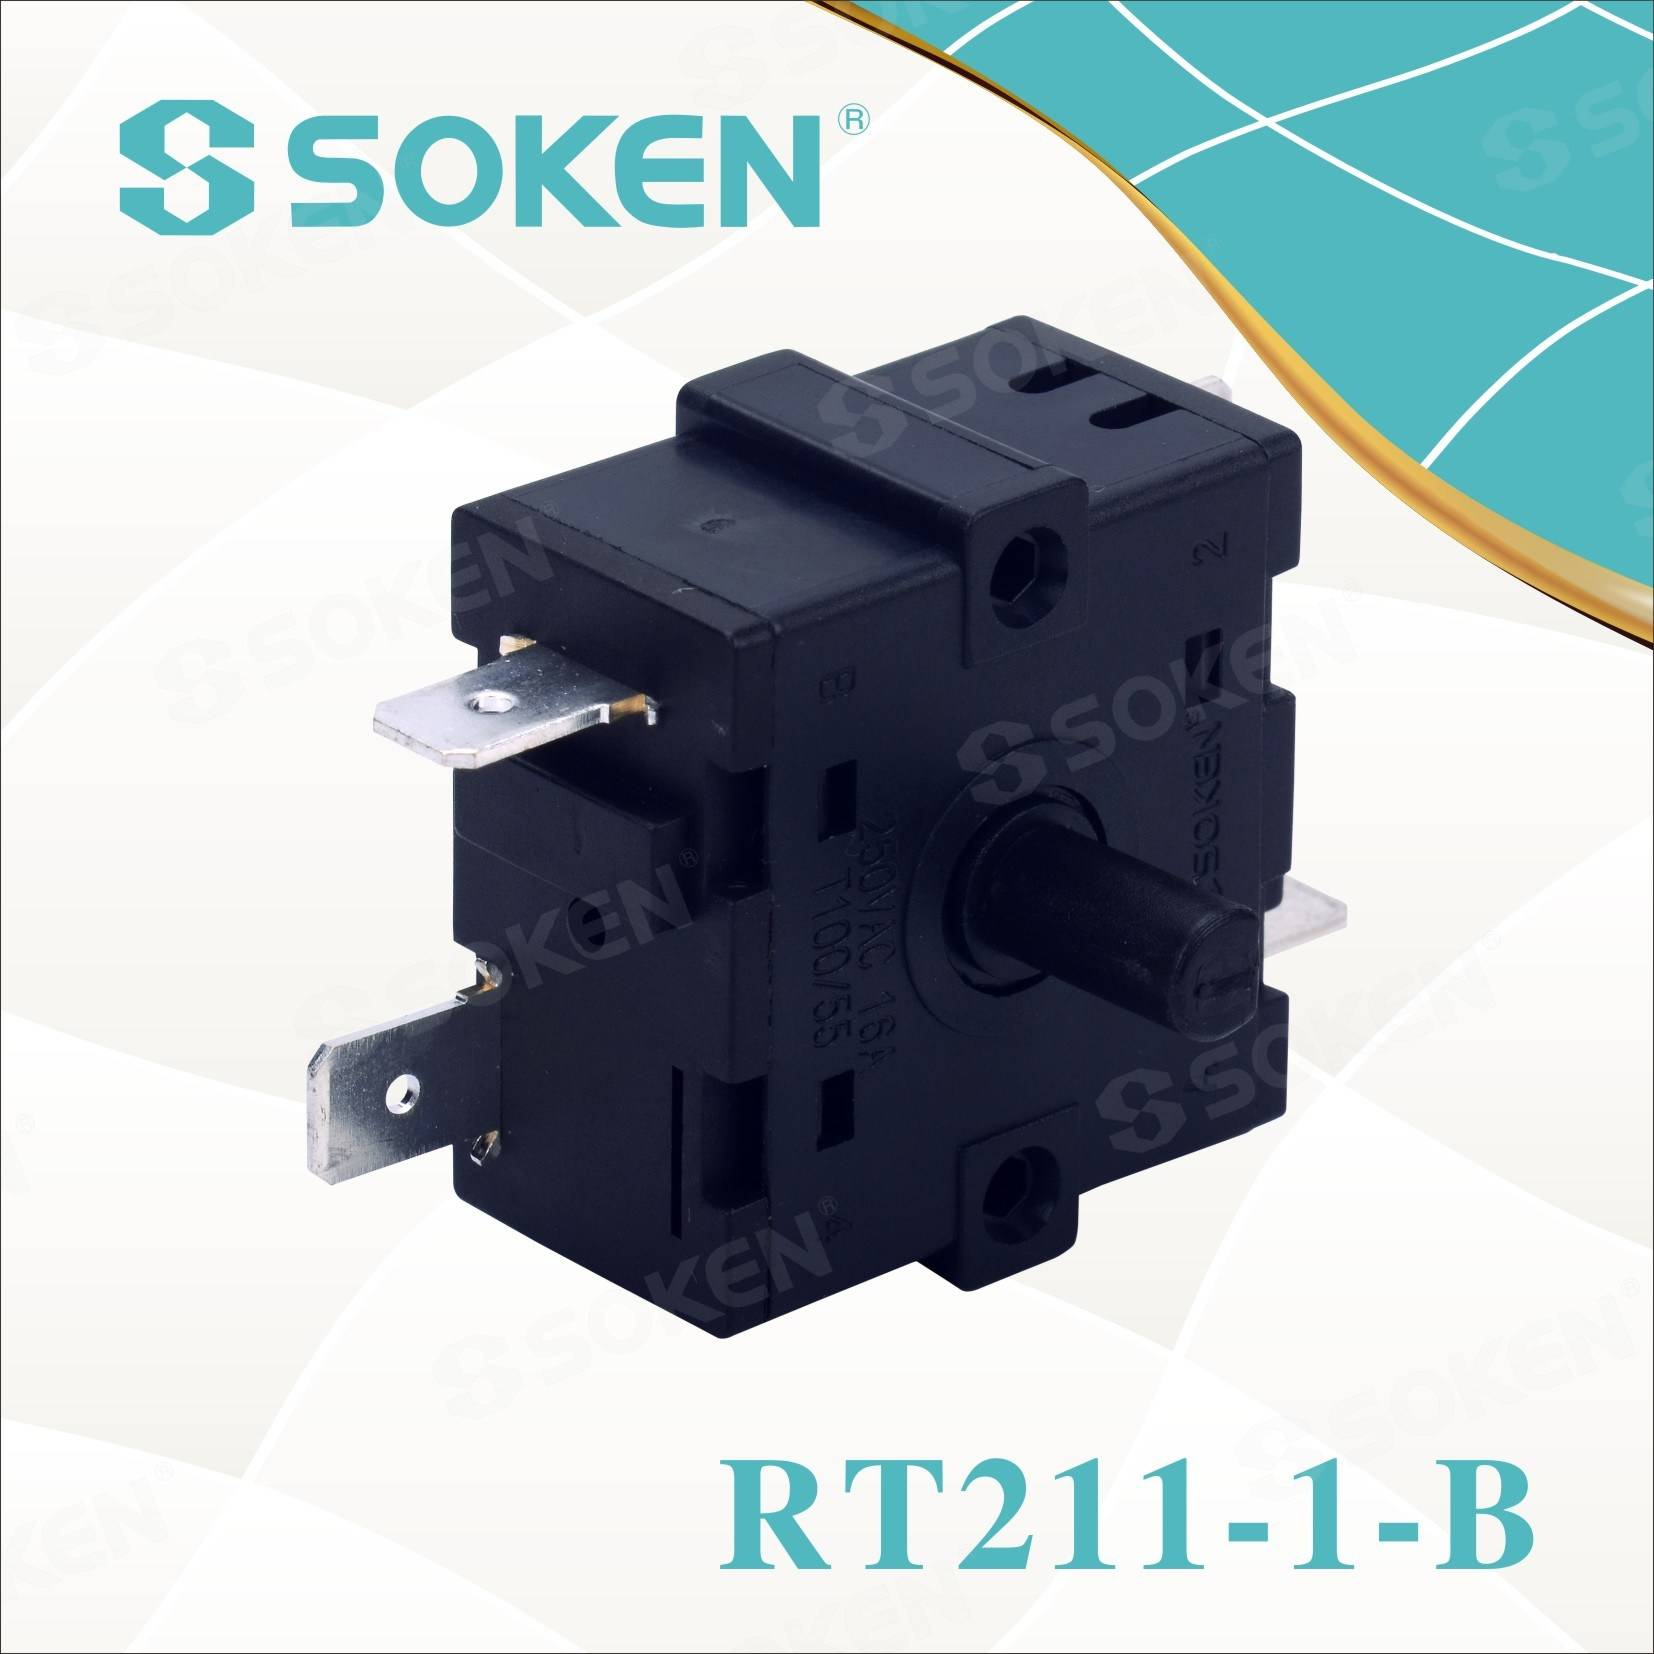 Discountable price Tronics Rocker Switch -